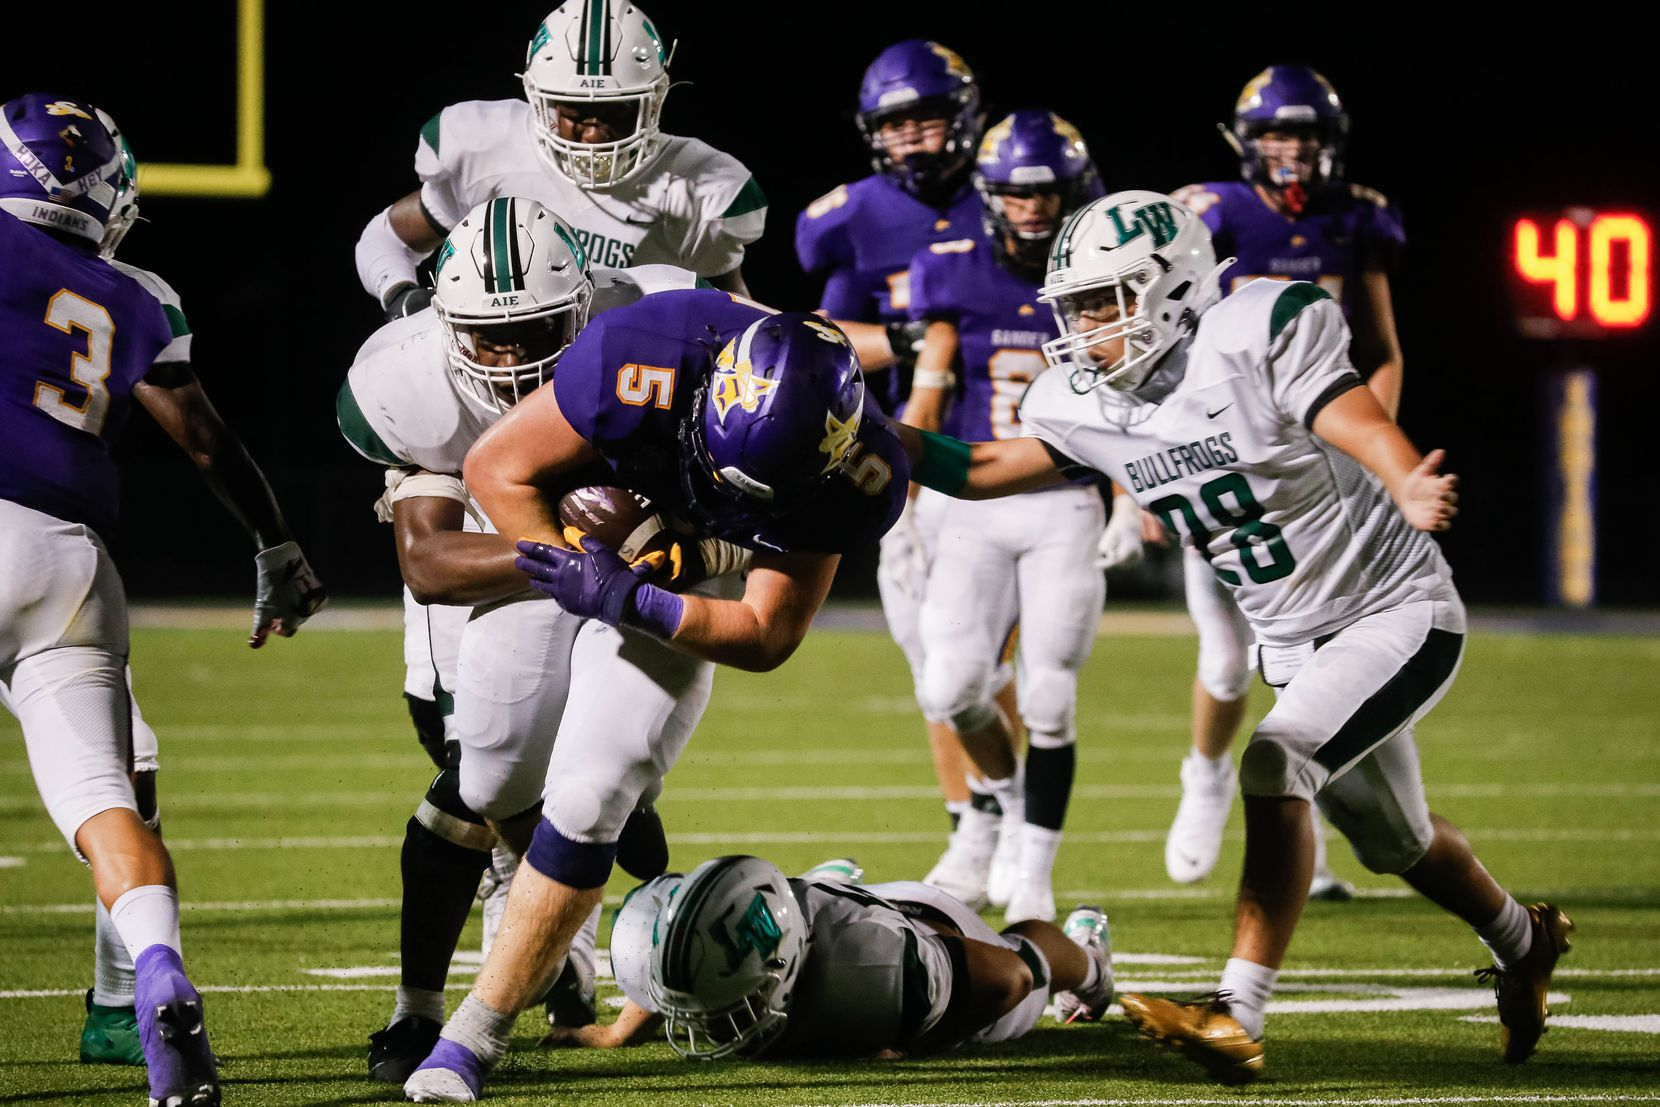 Sanger High School player Tallyn Welborn (5) is taken down by the Lake Worth High School's defense during the second half of a game on Sept. 4, 2020 in Sanger. Sanger won 49-35. (Juan Figueroa/ The Dallas Morning News)